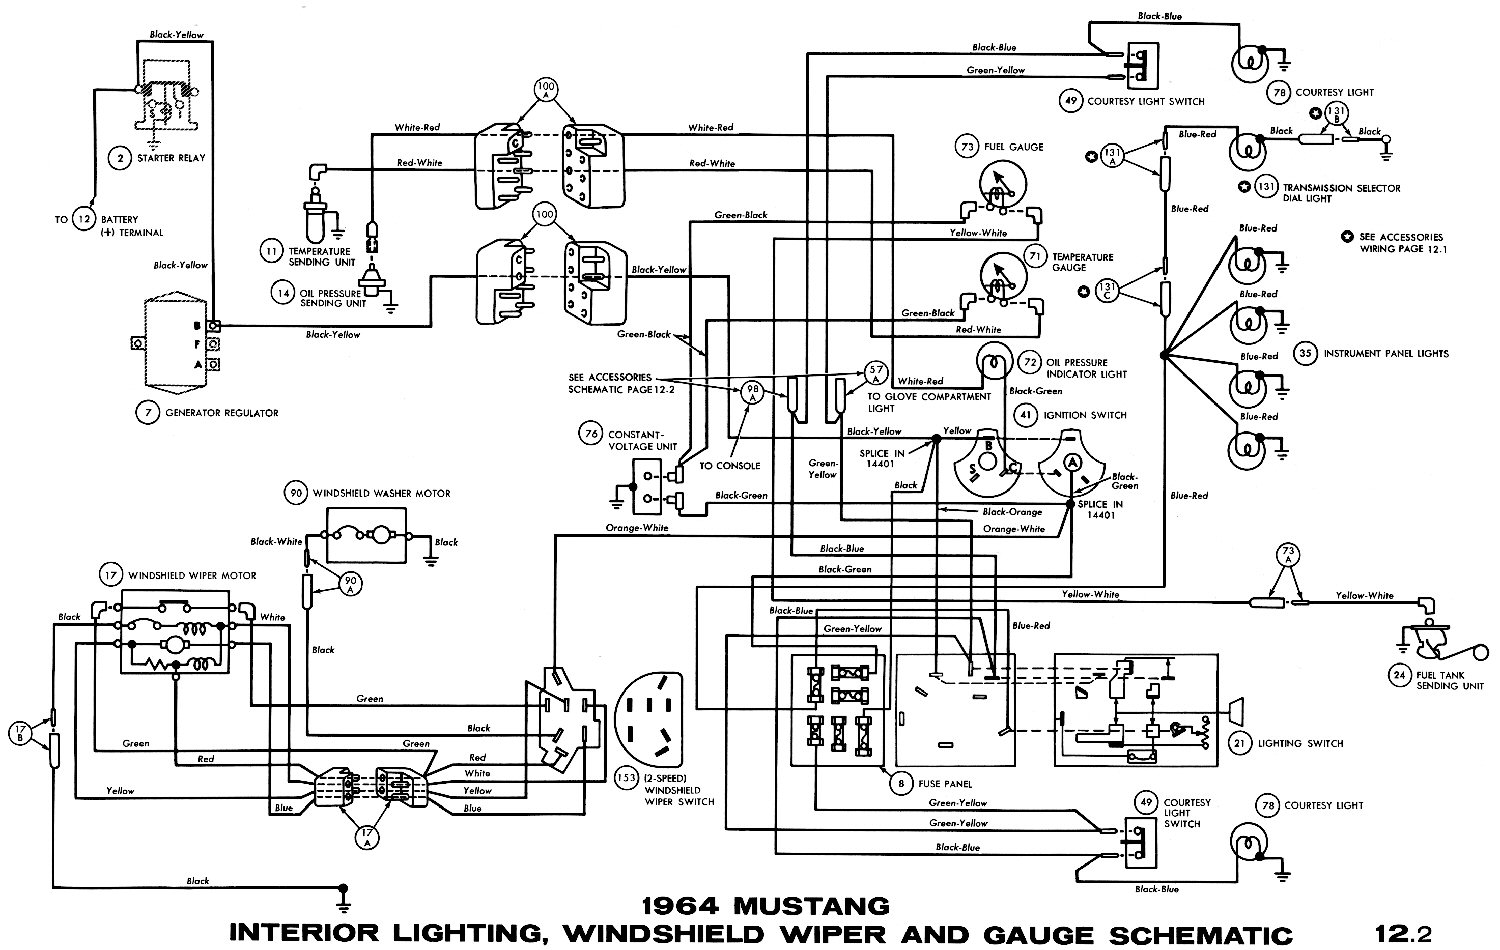 1964k mustang wiring diagrams mustang engine diagram \u2022 free wiring 2005 ford mustang instrument cluster wiring diagram at virtualis.co